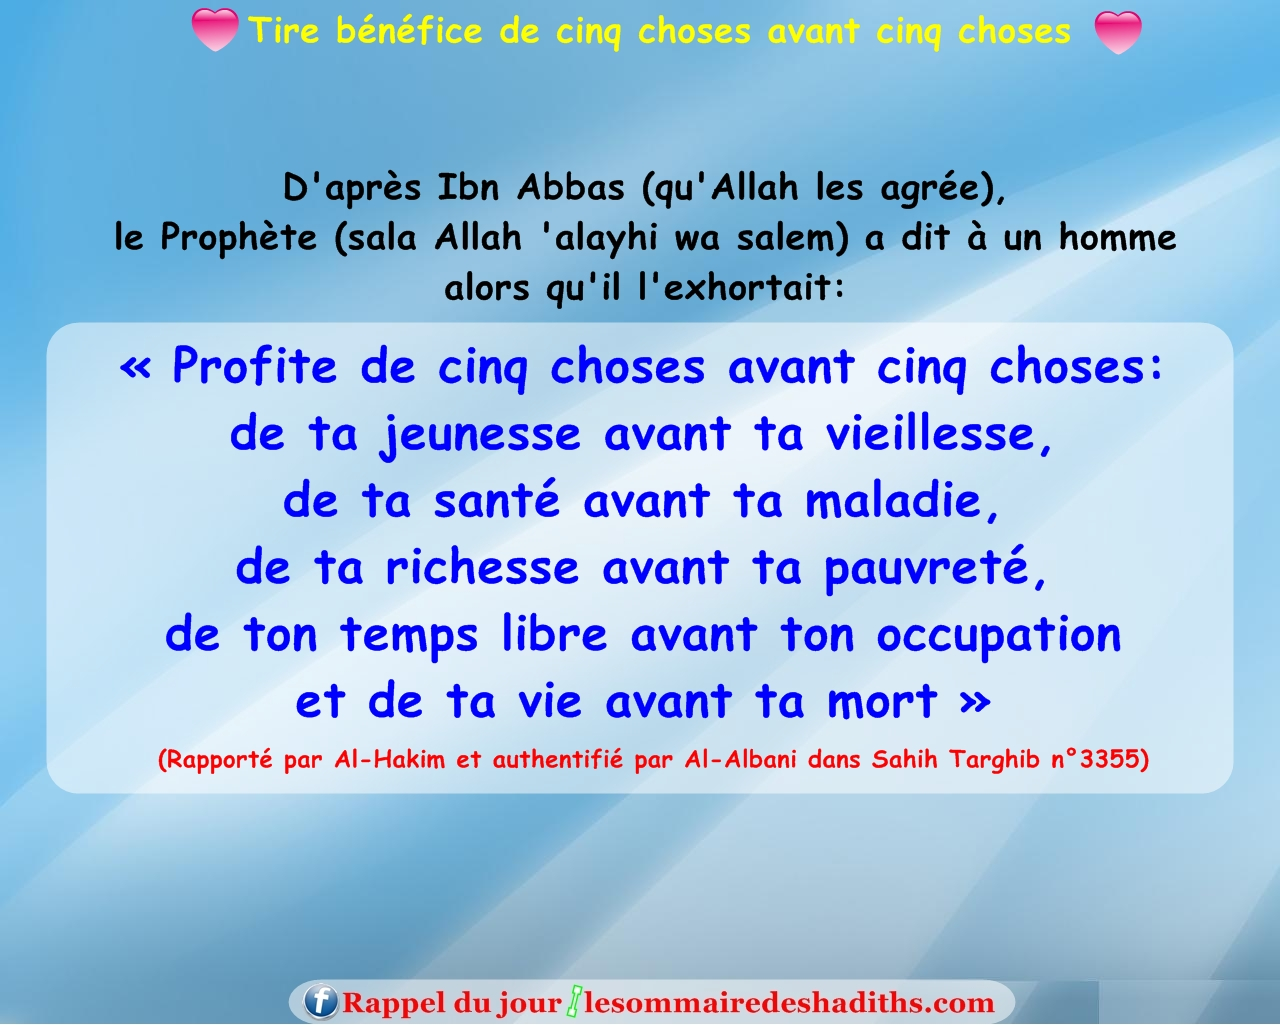 Tire bénéfice de cinq choses avant cinq choses (Ibn Abbas)